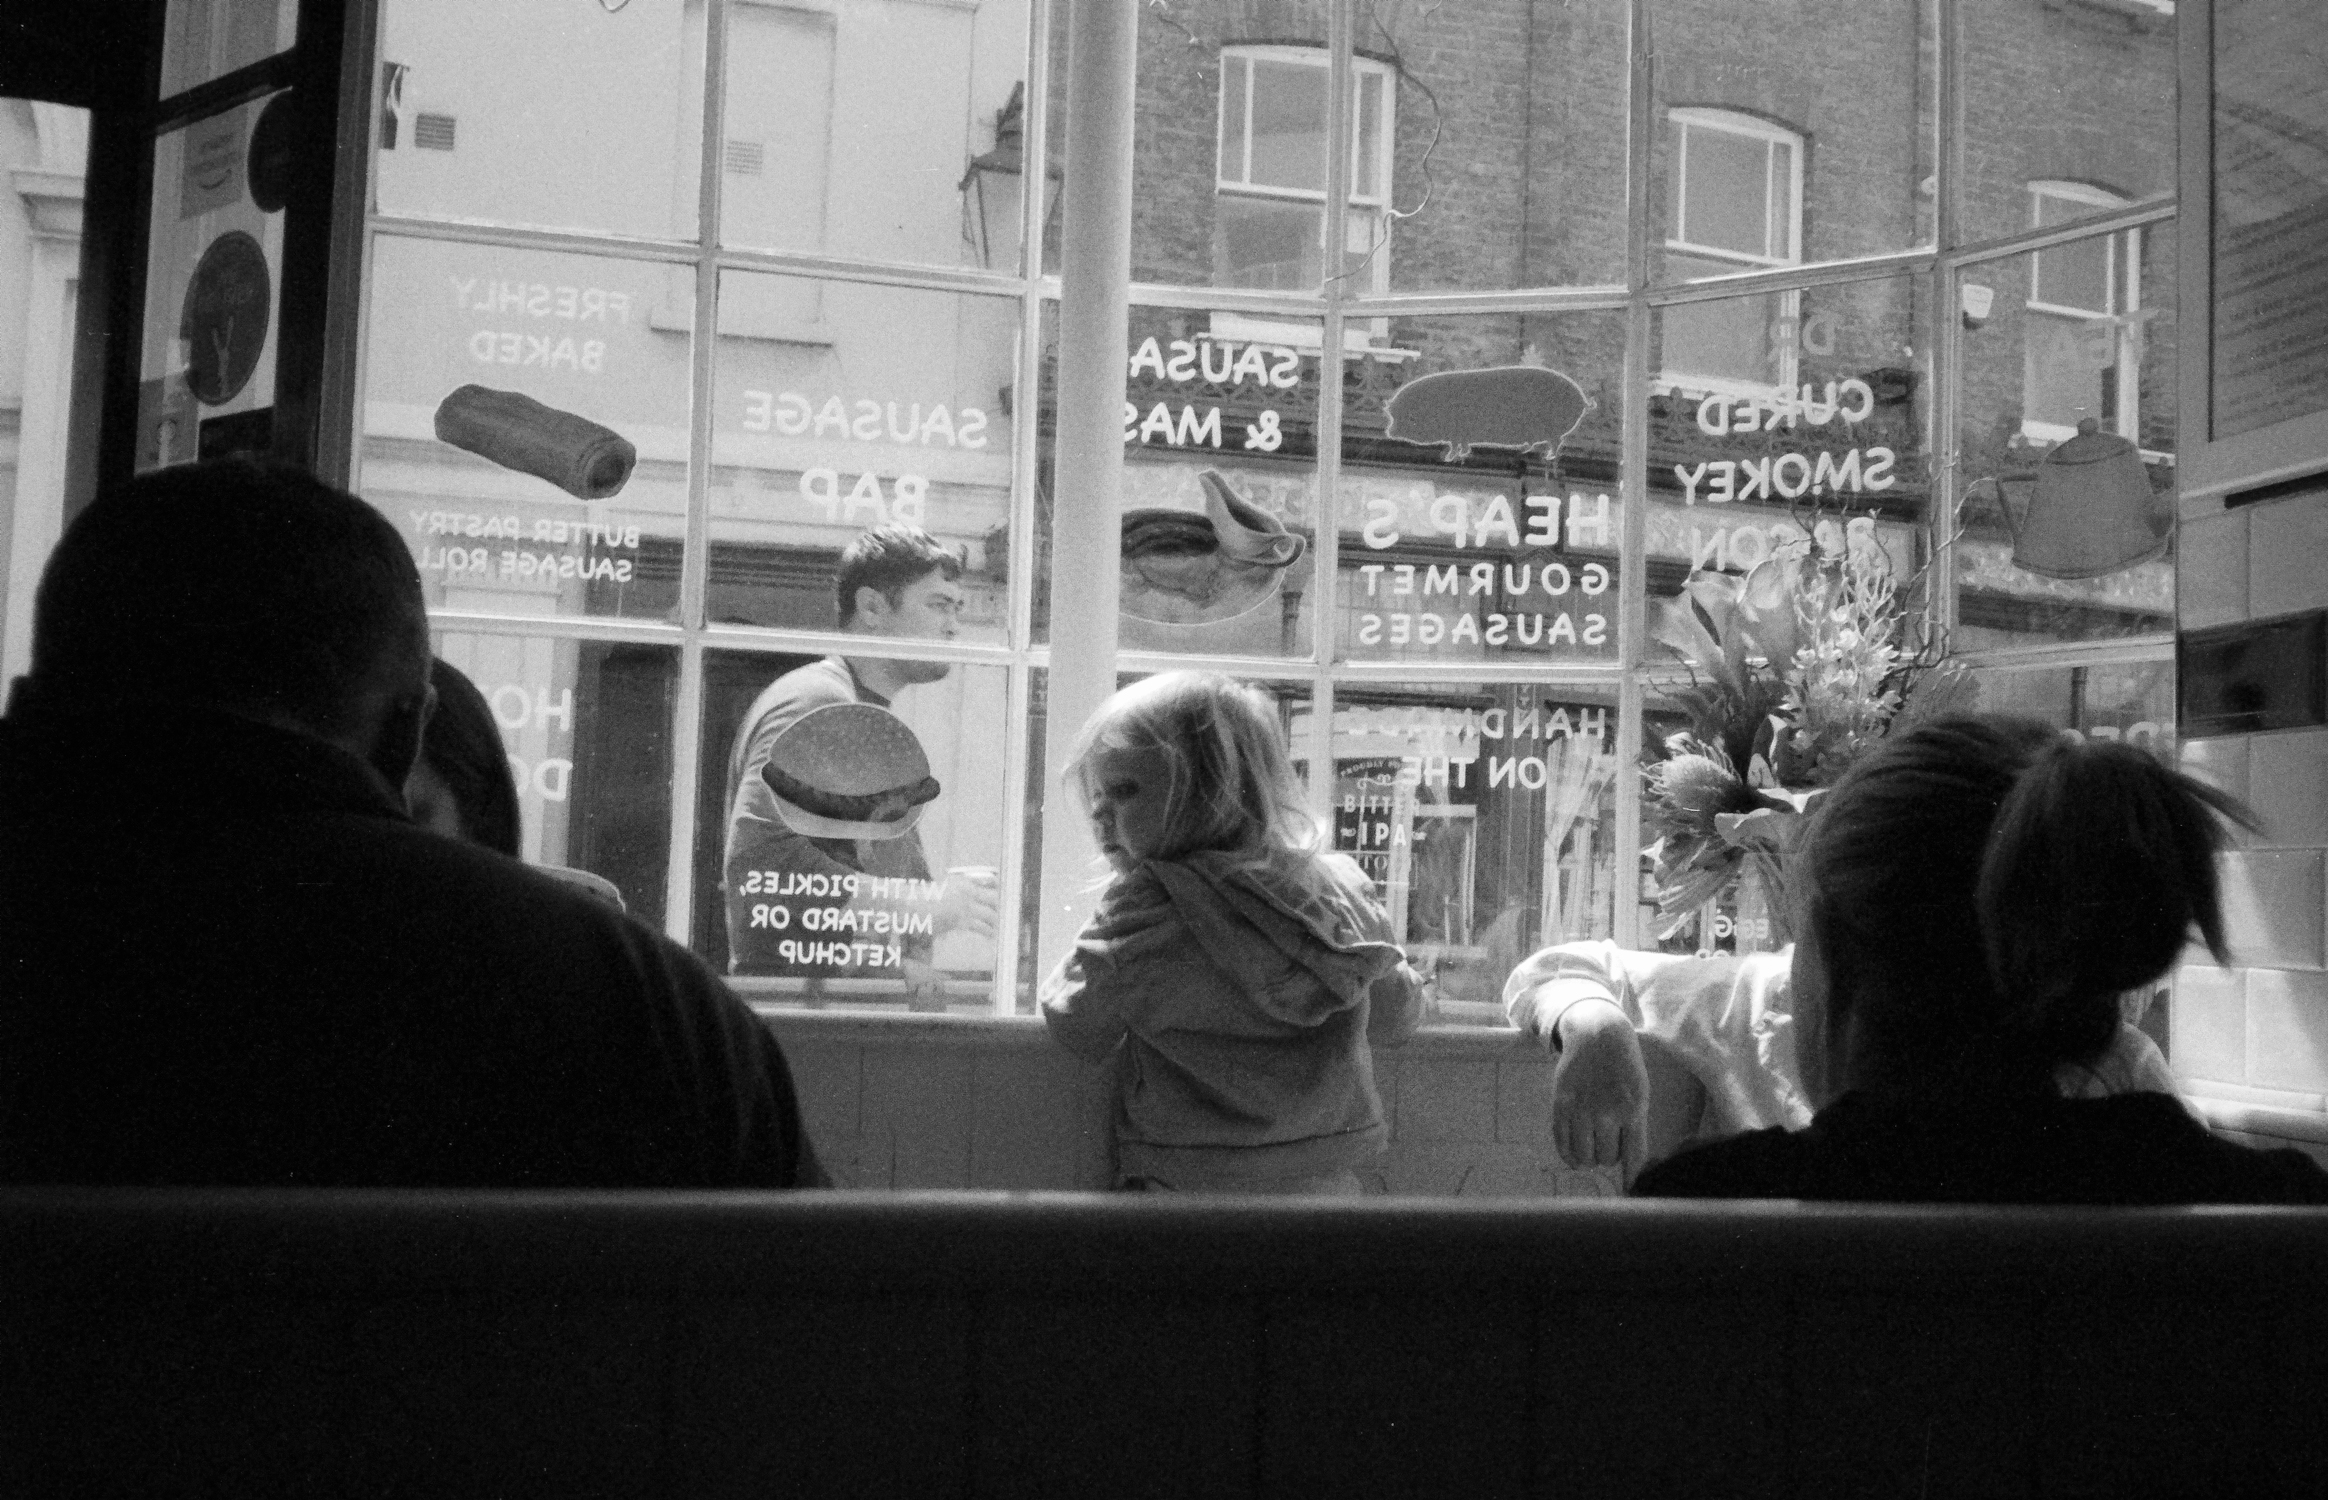 Child in cafe window (Pic: Stephen Dowling)